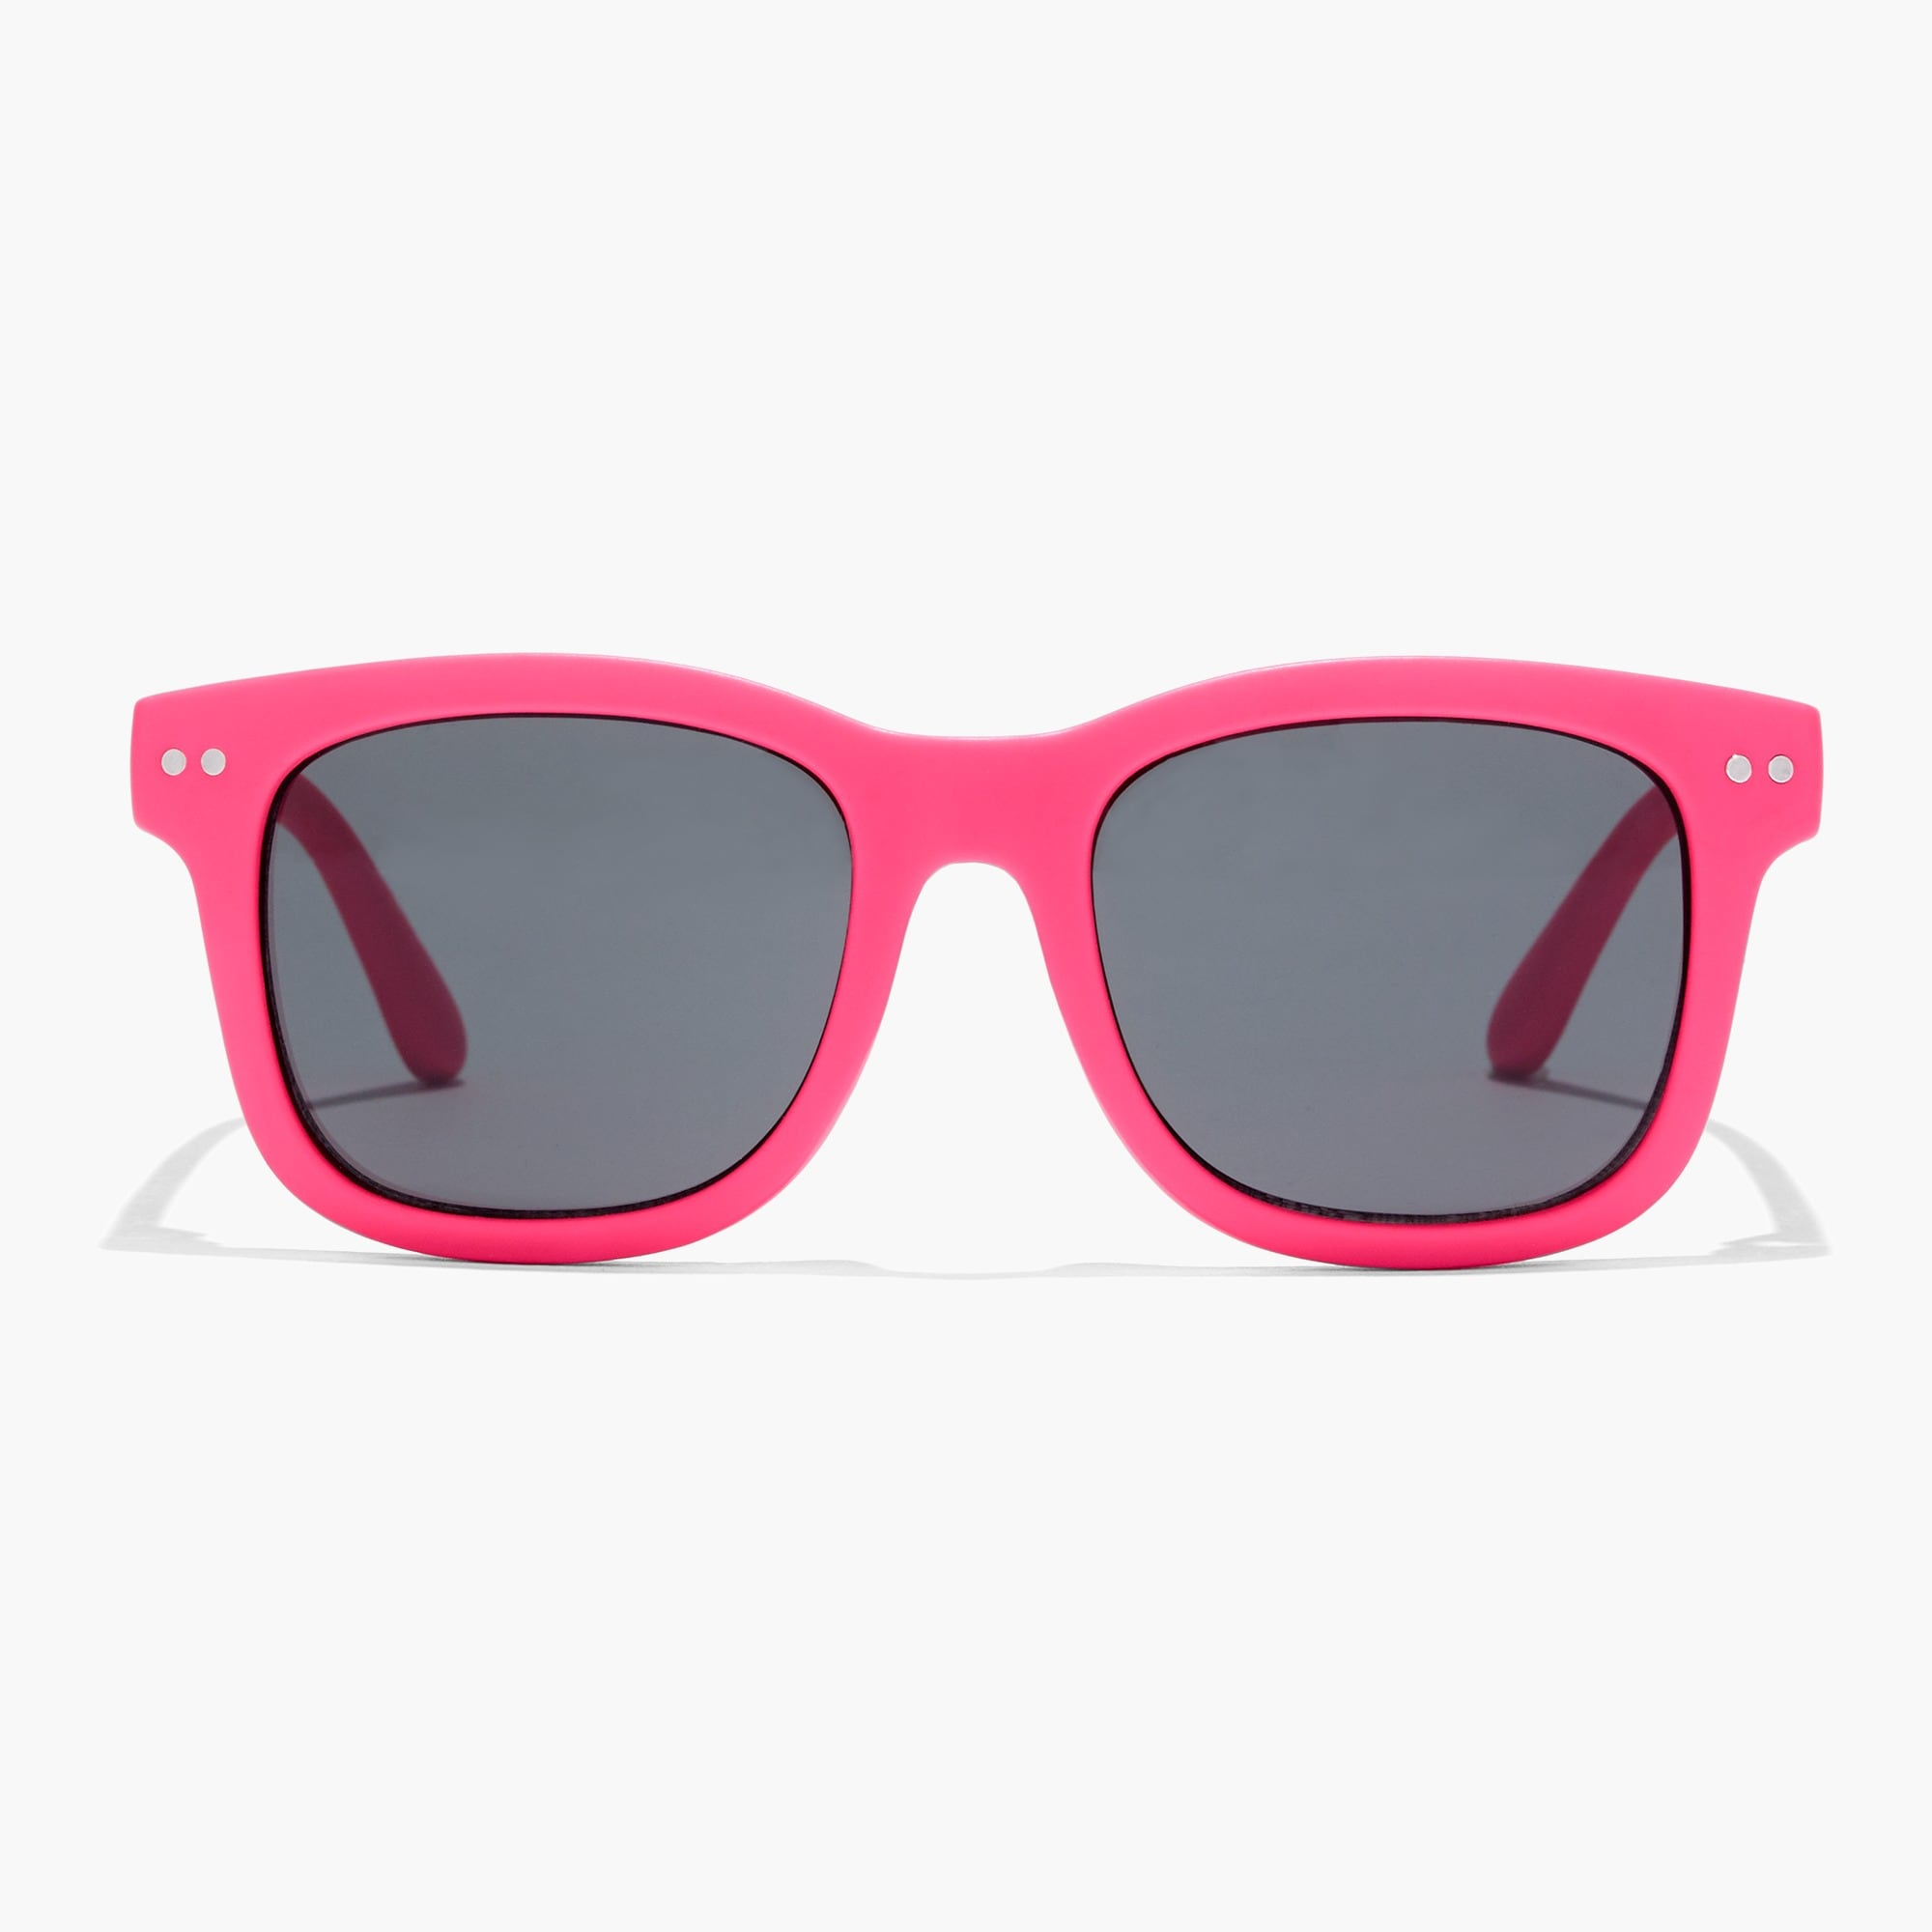 kids' sunnies - girls' accessories